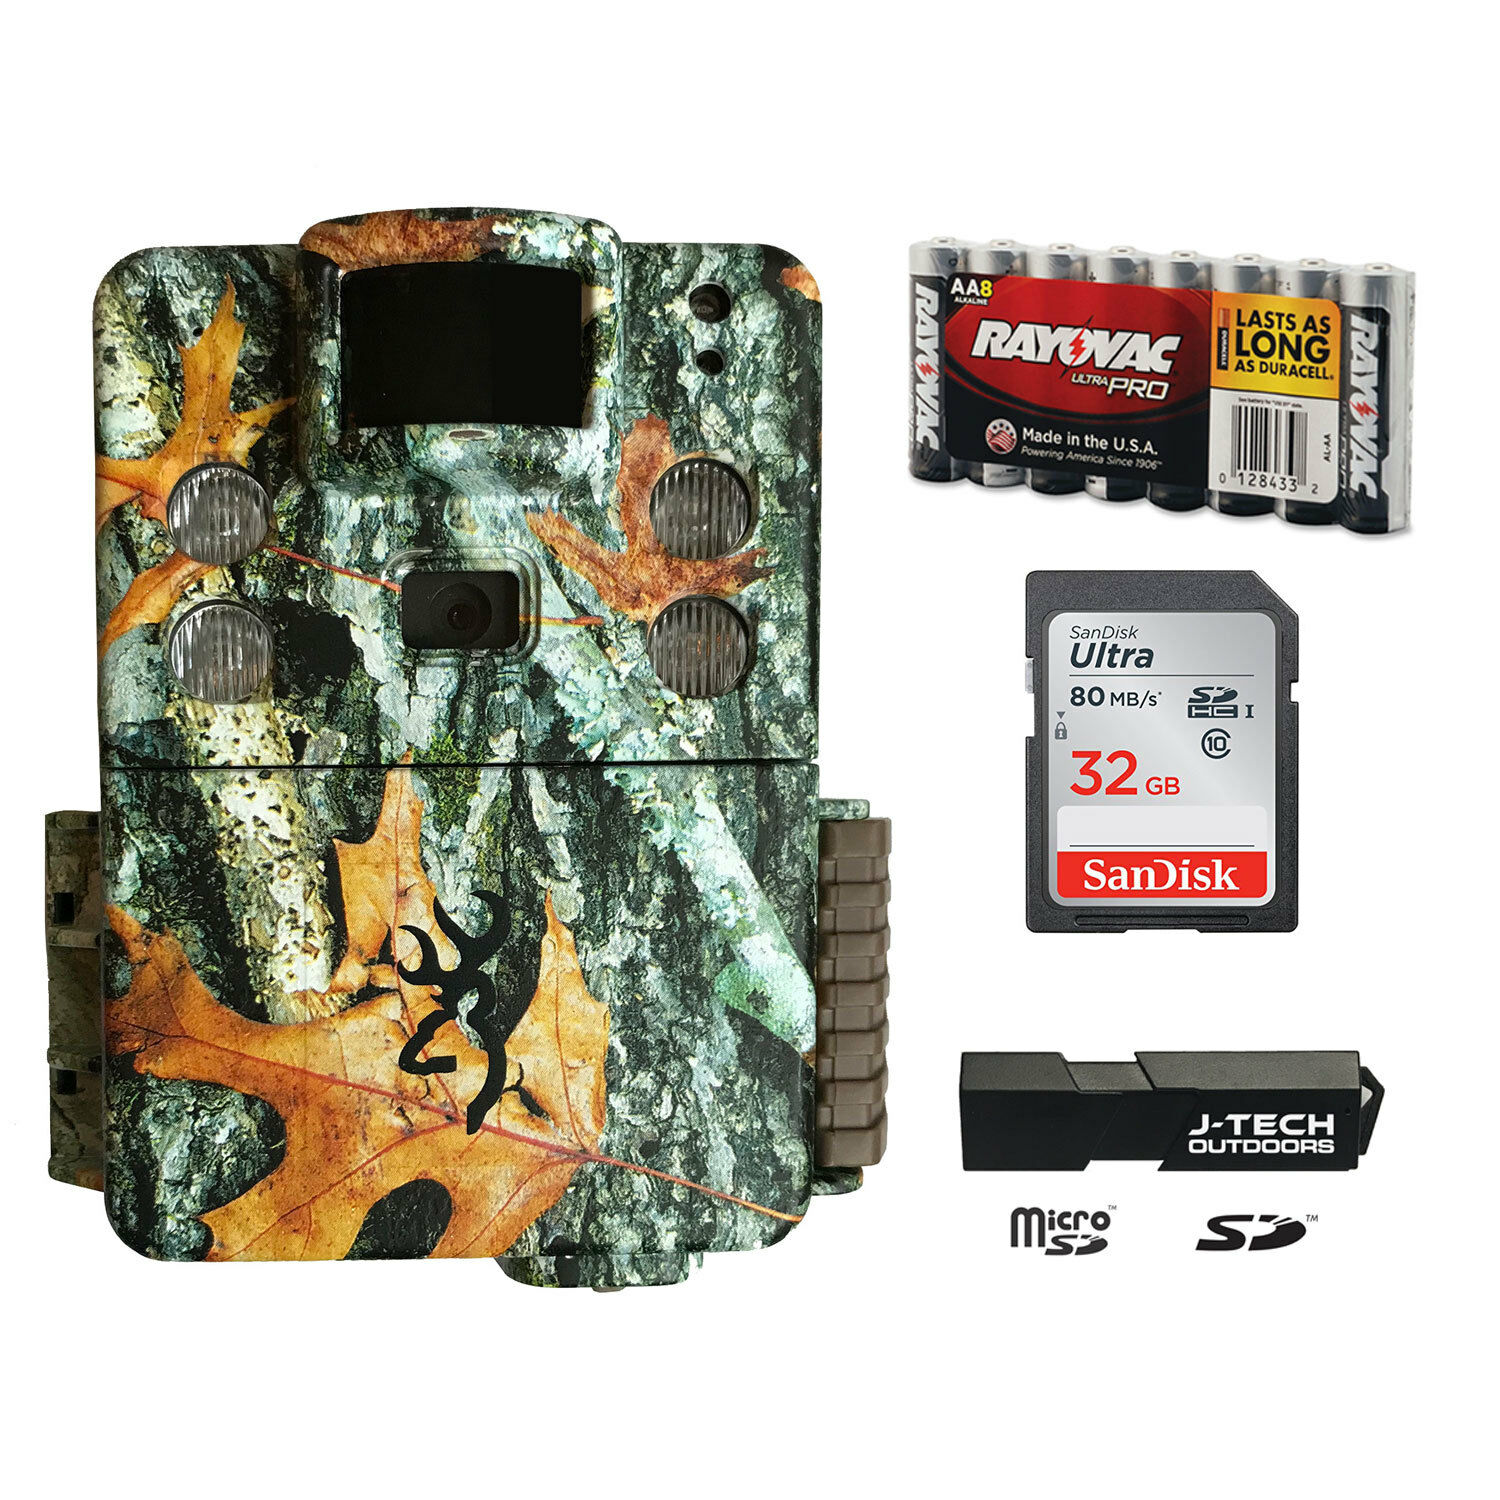 marróning Strike Force HD Pro X 2019 Trail Juego Cam completa Plus Pack   BTC 5 HDPX